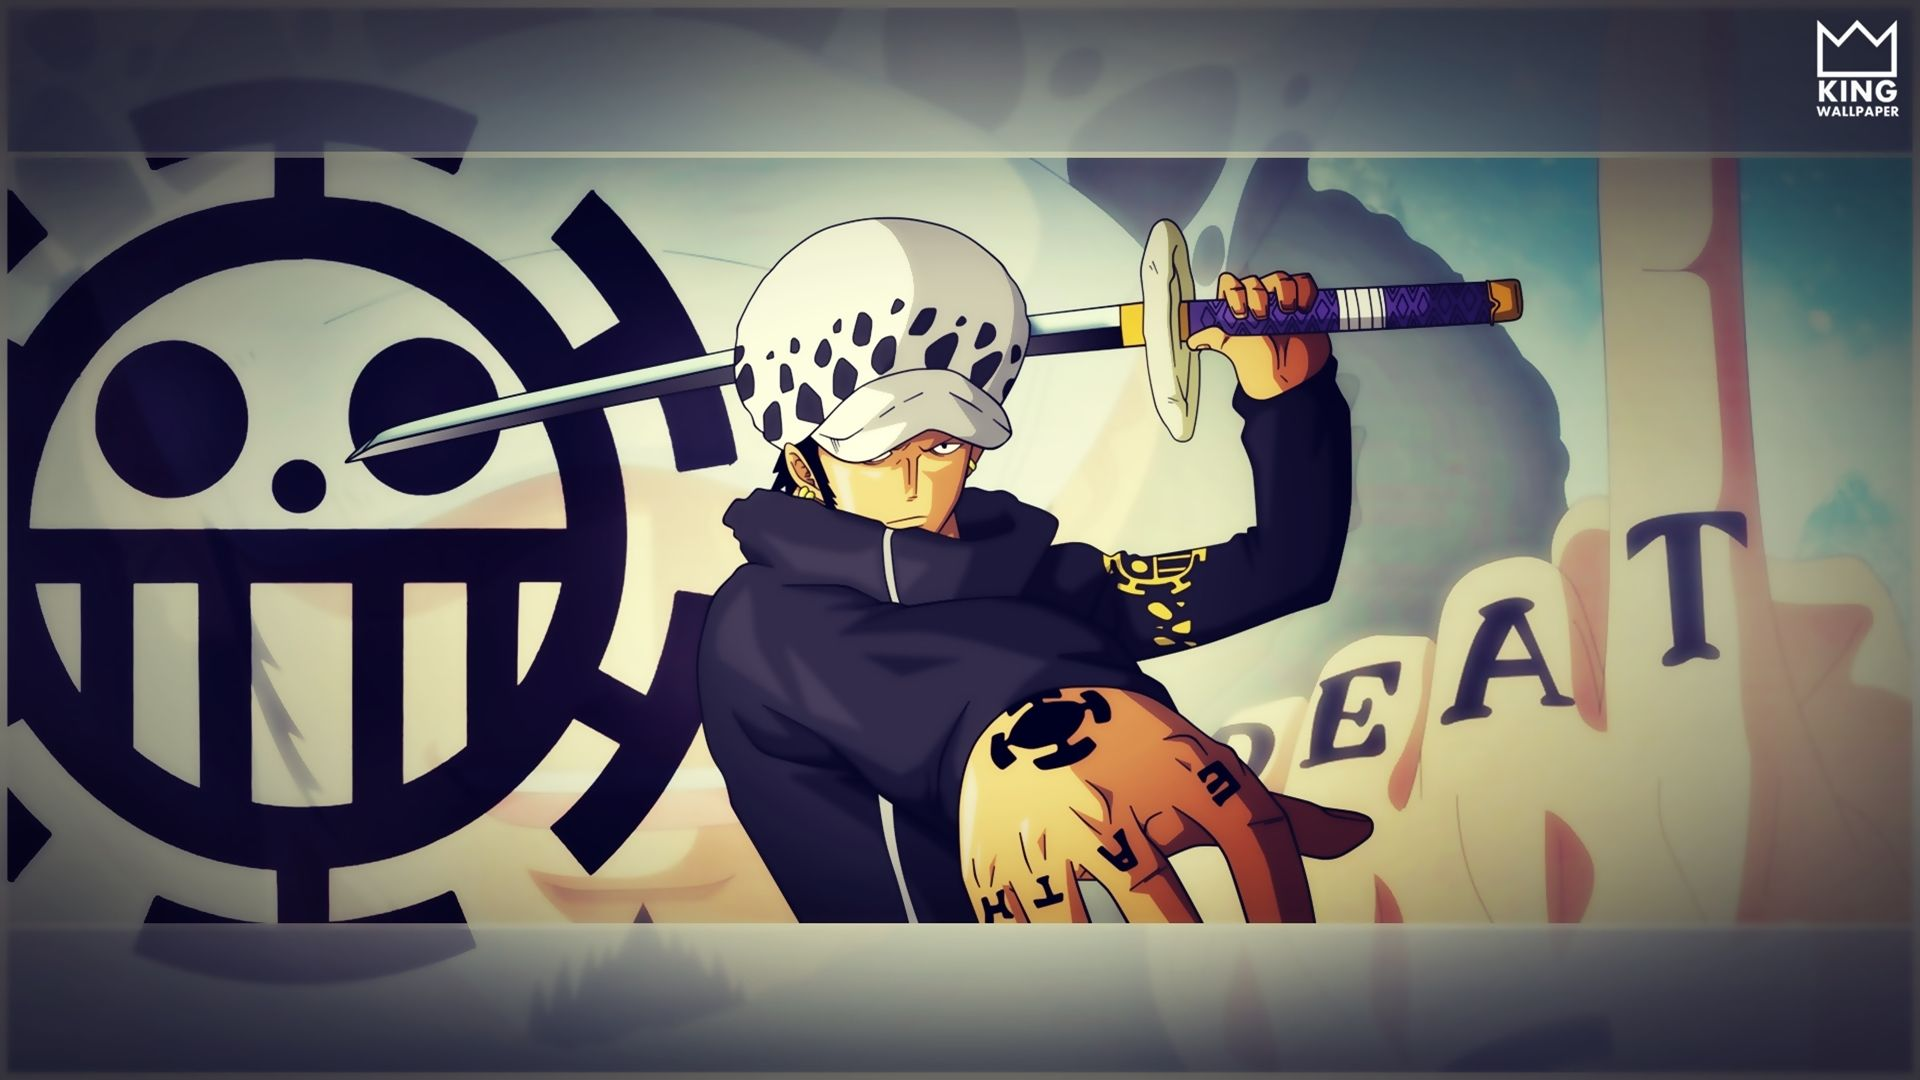 Trafalgar Law Wallpaper One Piece By Kingwallpaper Trafalgar